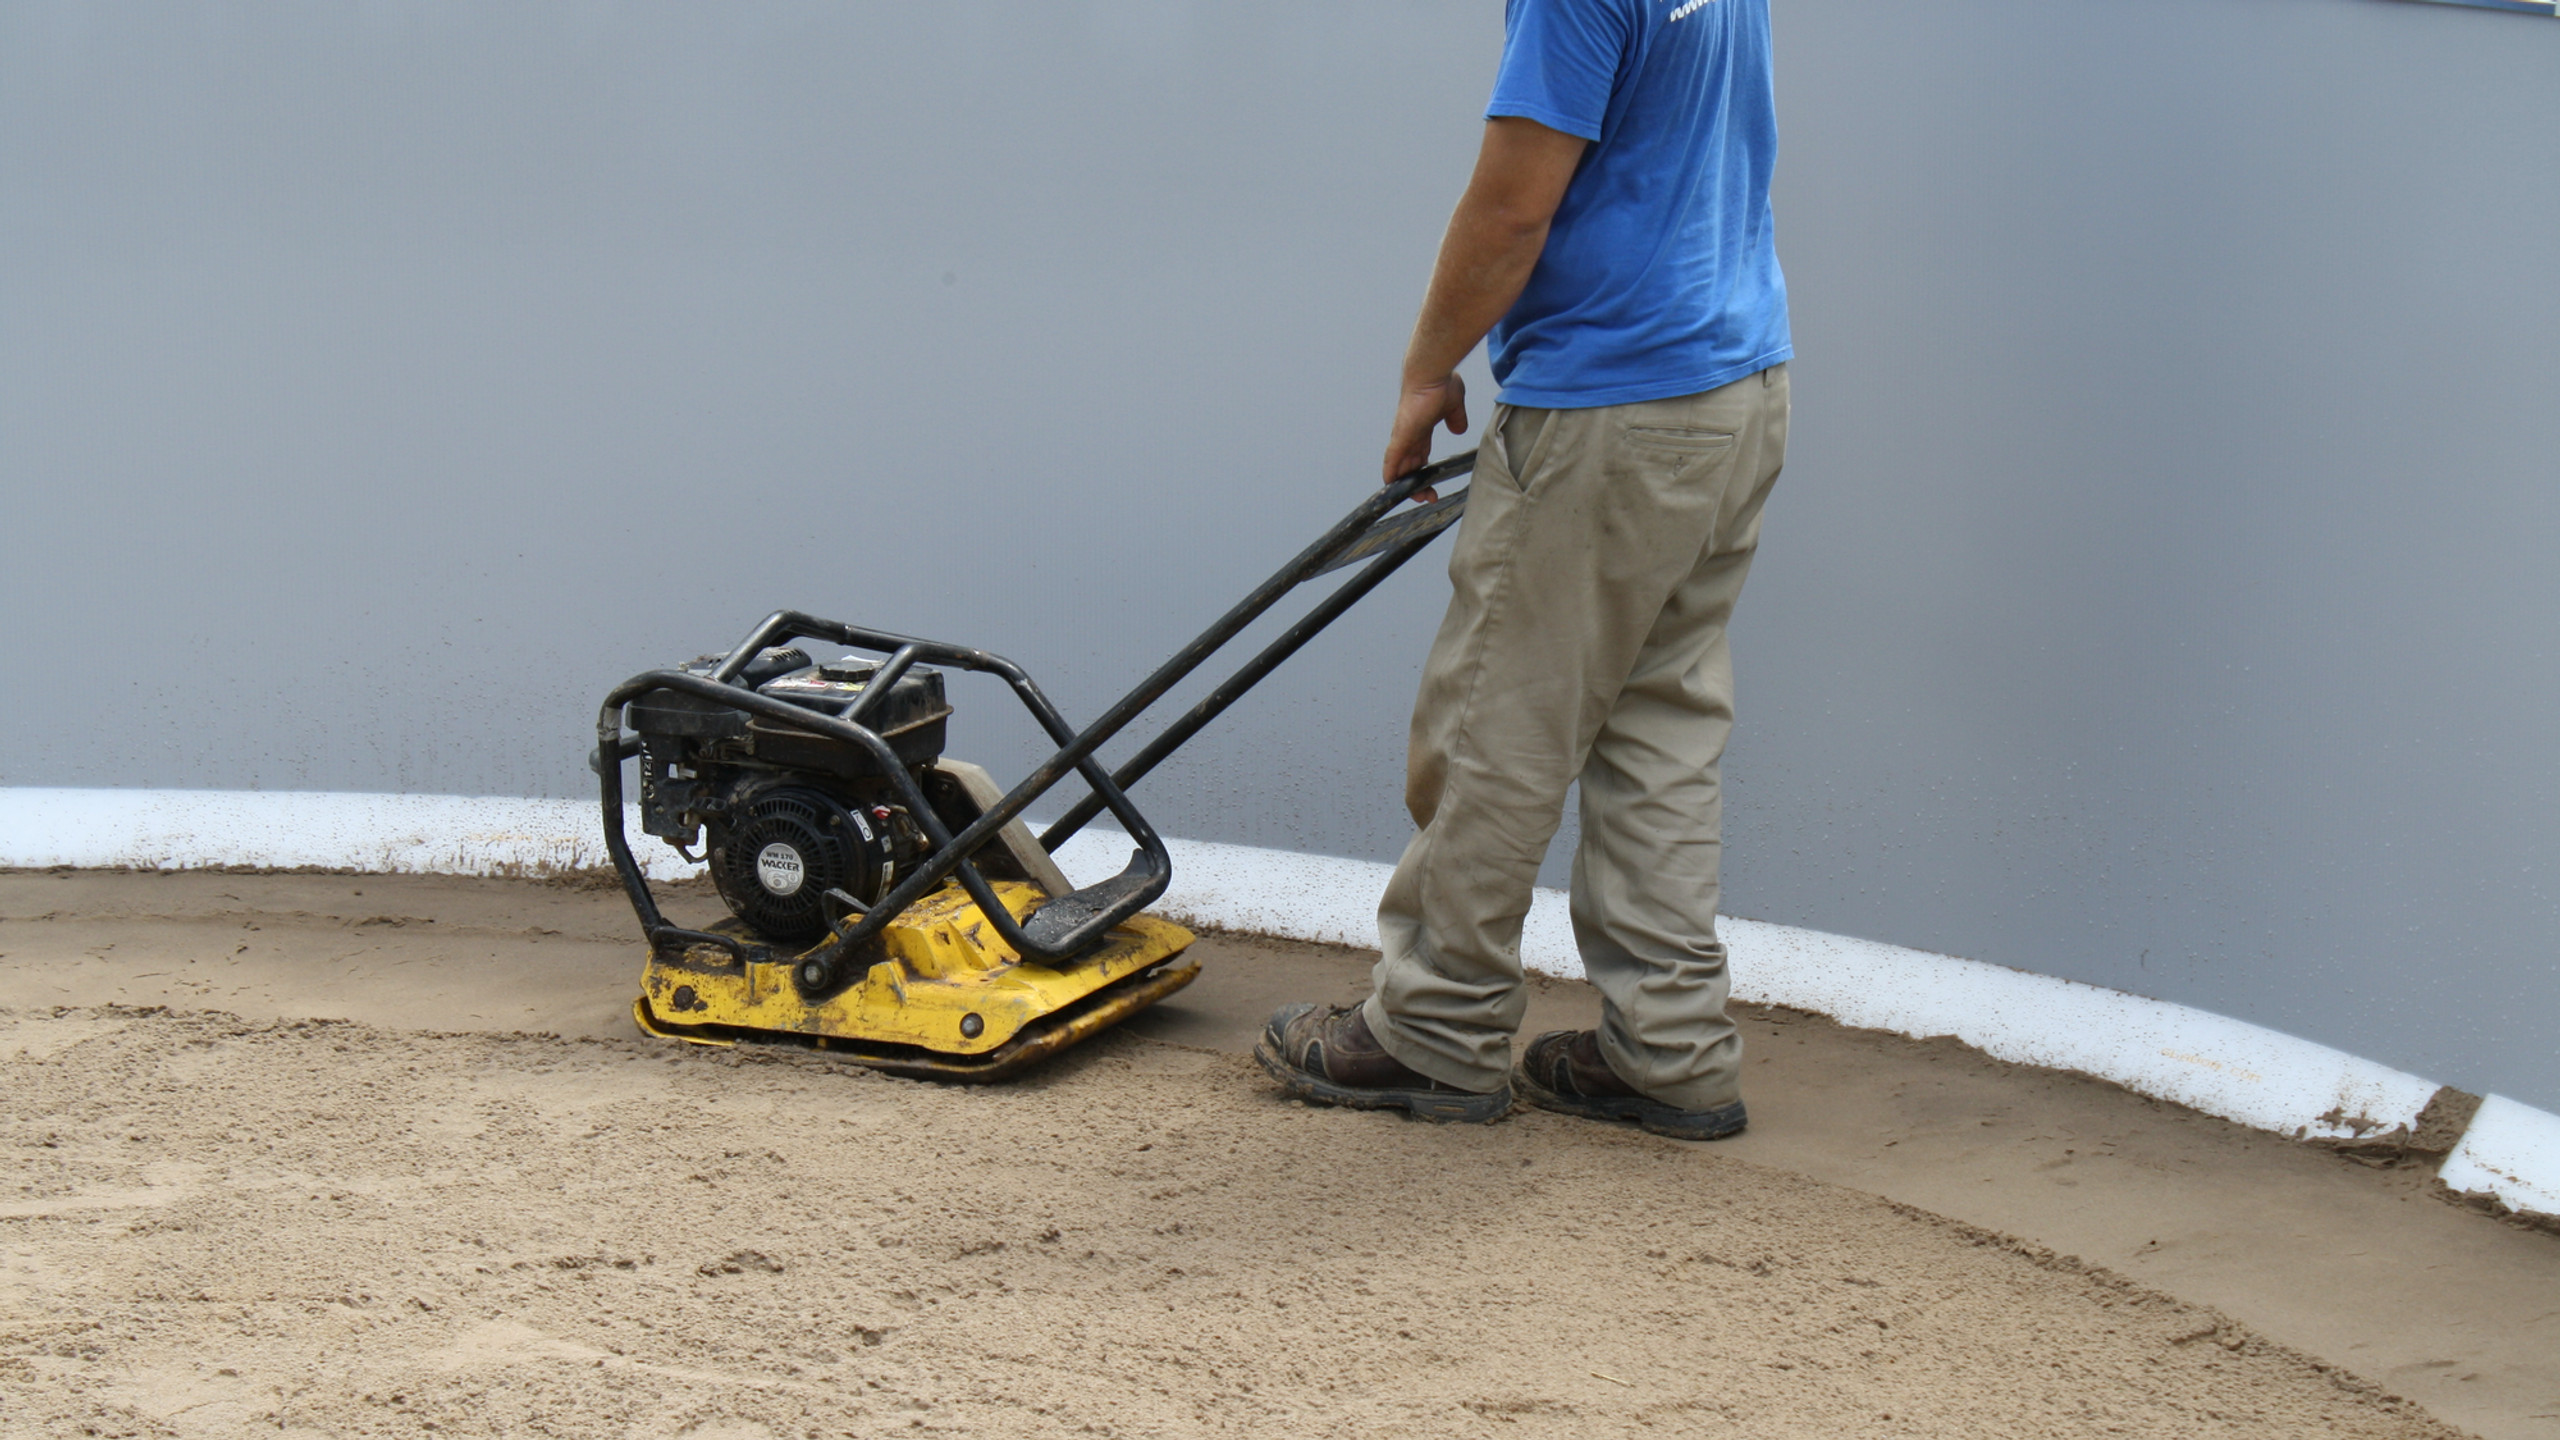 Now we use a plate compactor to compact the sand and get a good firm base.